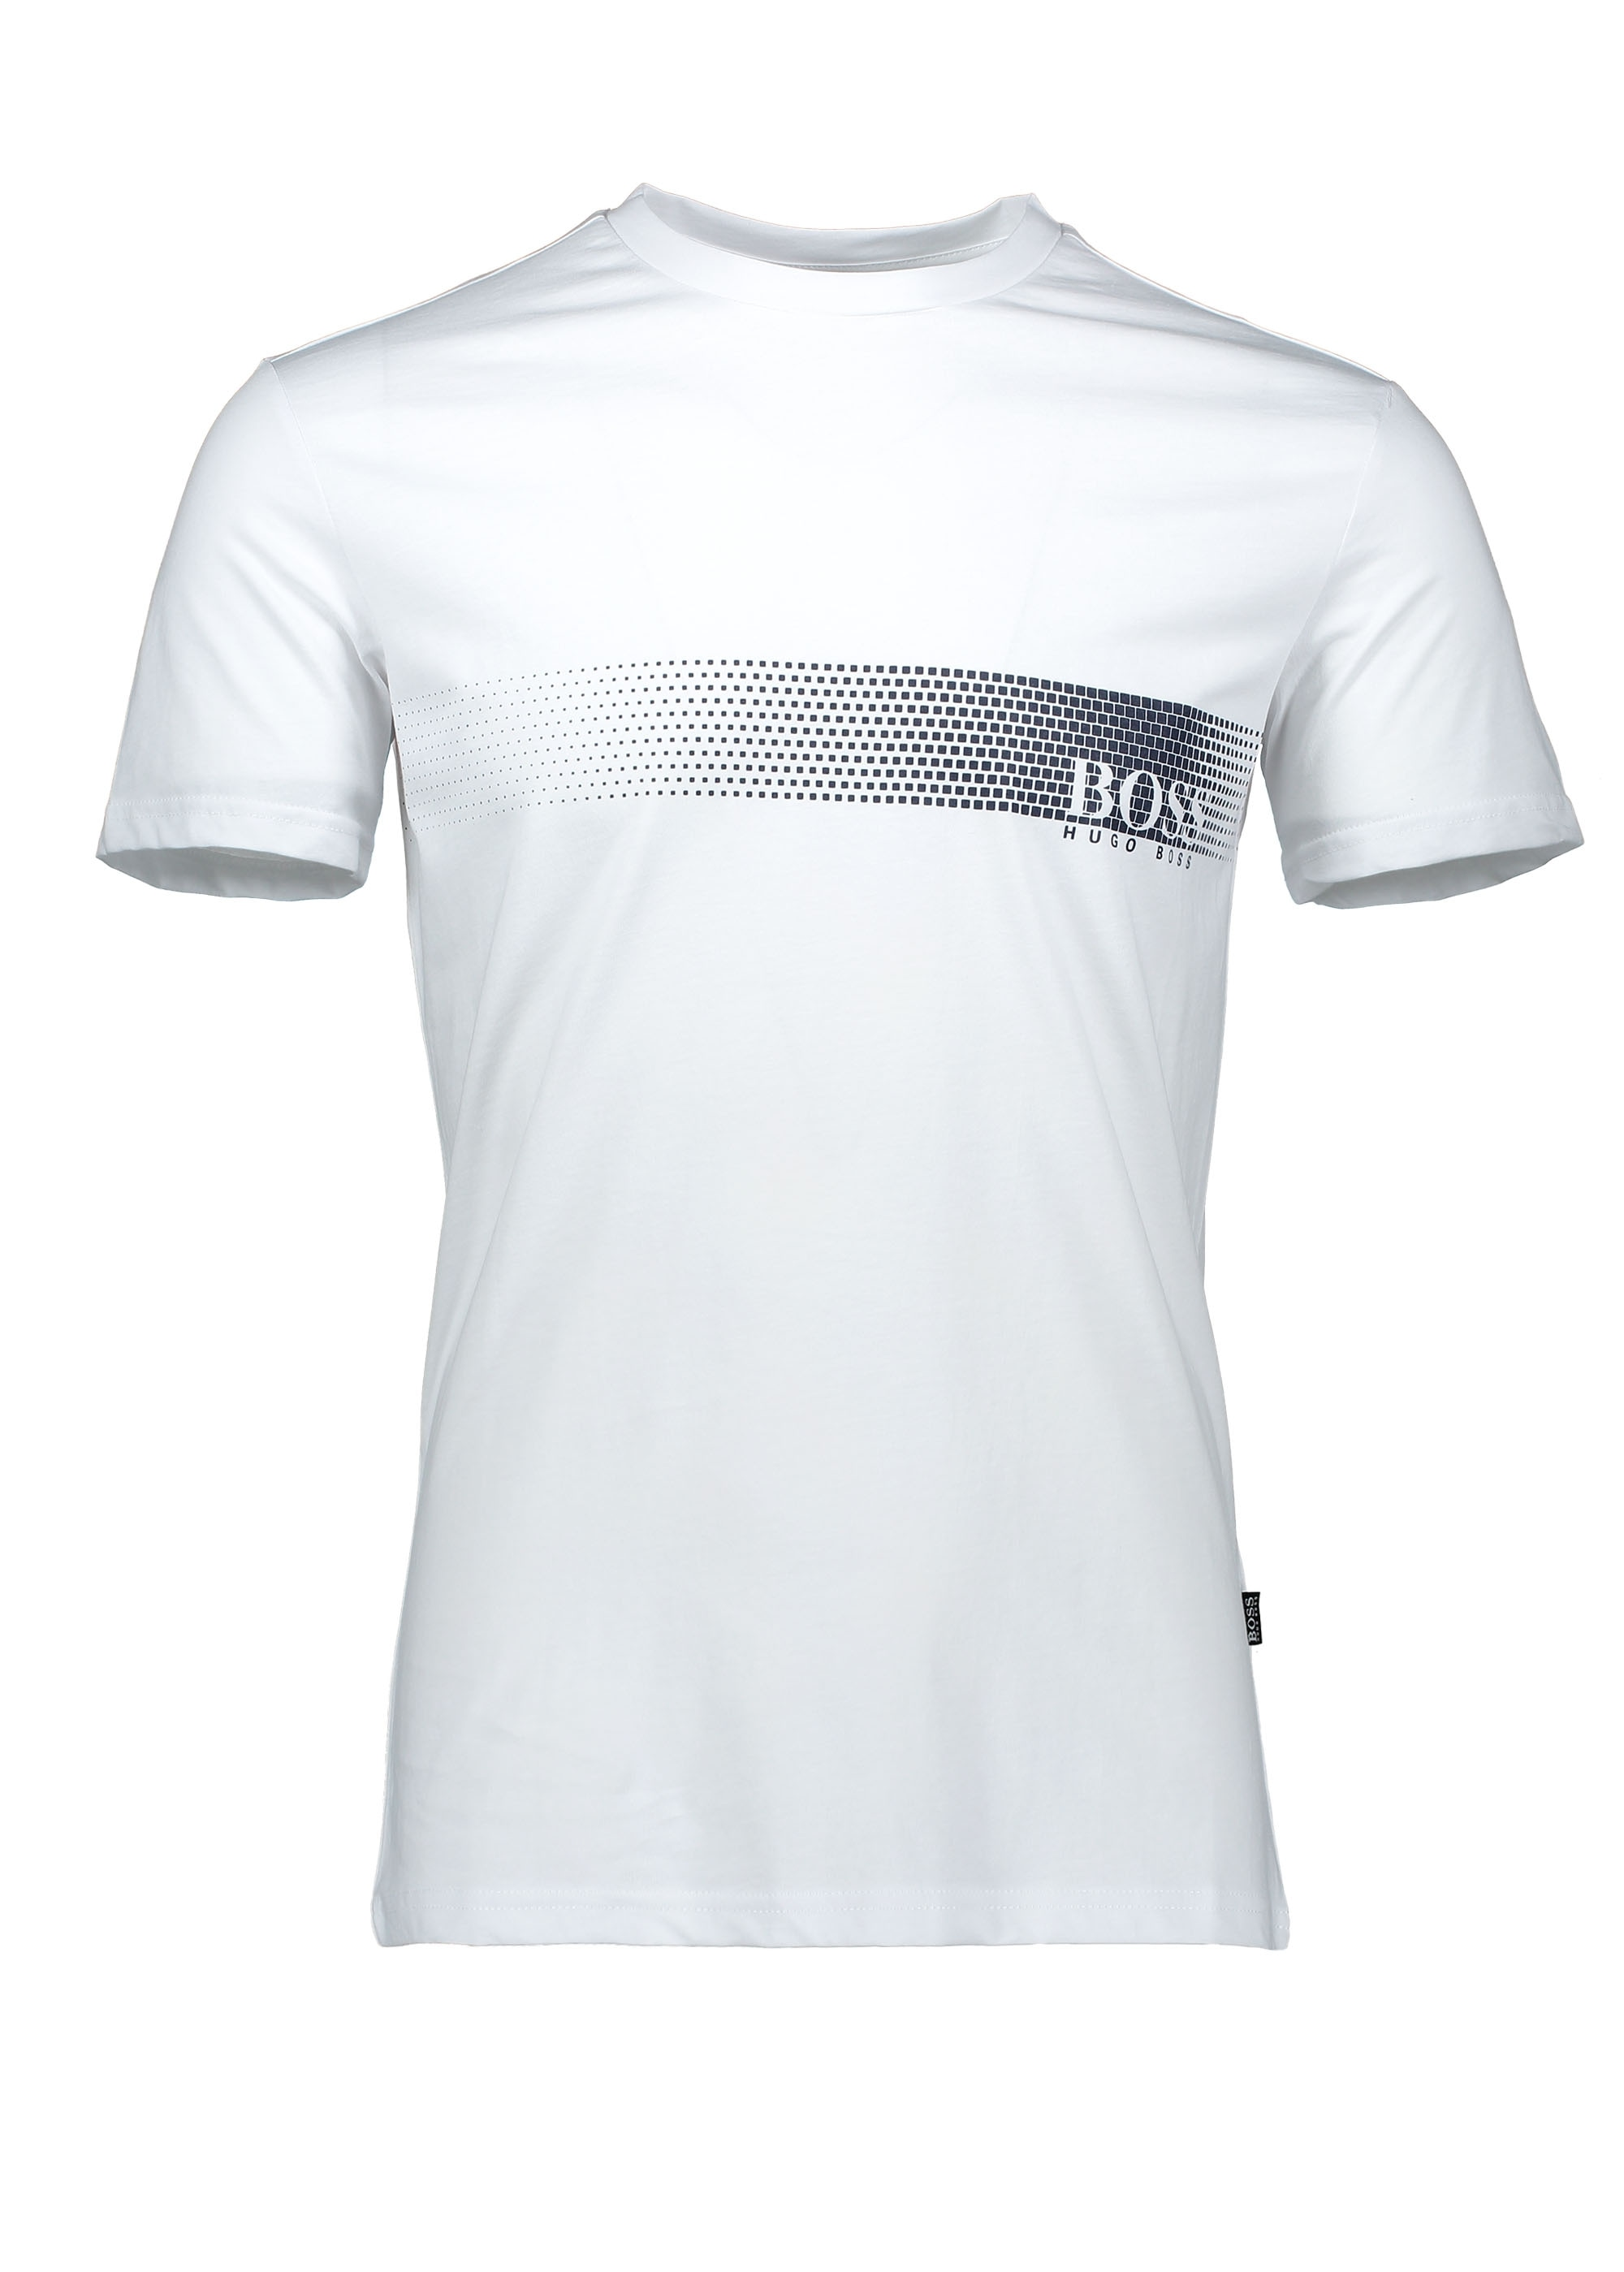 Hugo boss t shirt rn natural t shirts from triads uk for Hugo boss t shirts online